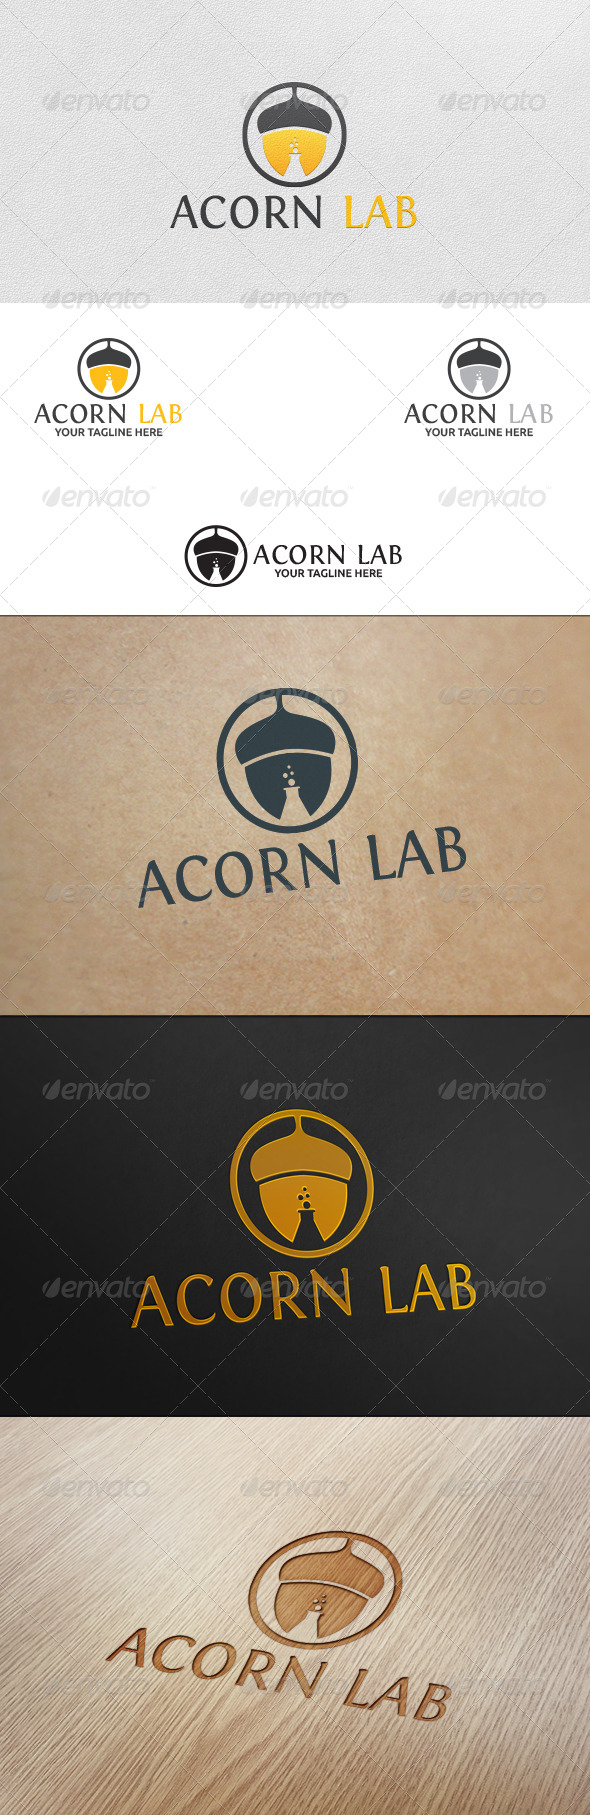 Acorn Lab Logo Template